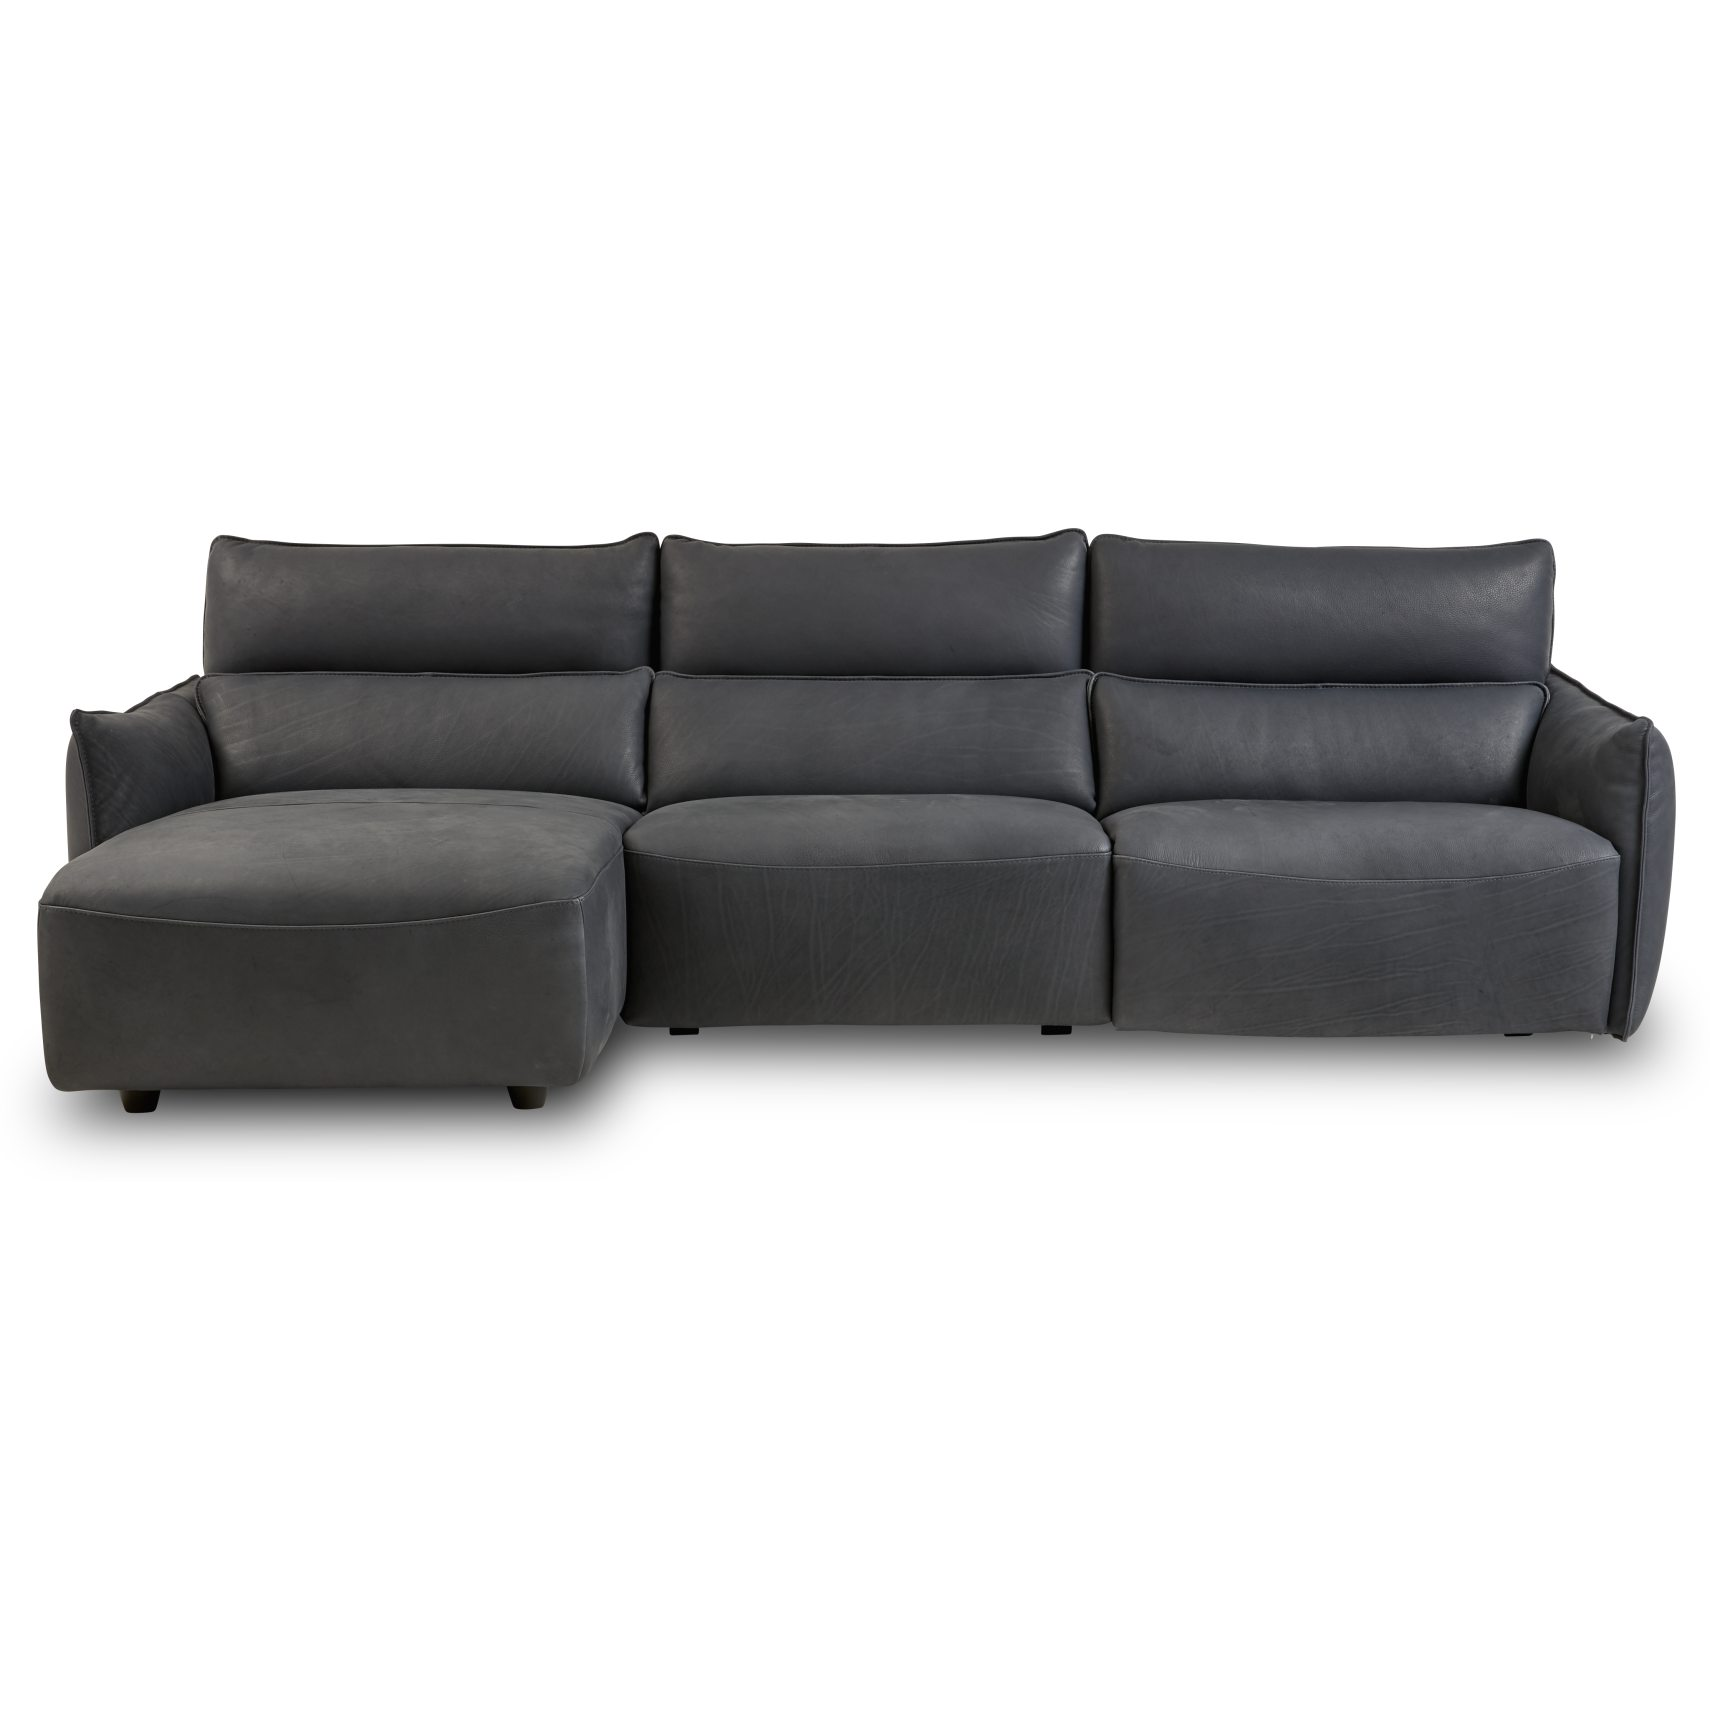 Natuzzi Editions C027 Sofa med chaiselong - Sofa med chaiselong